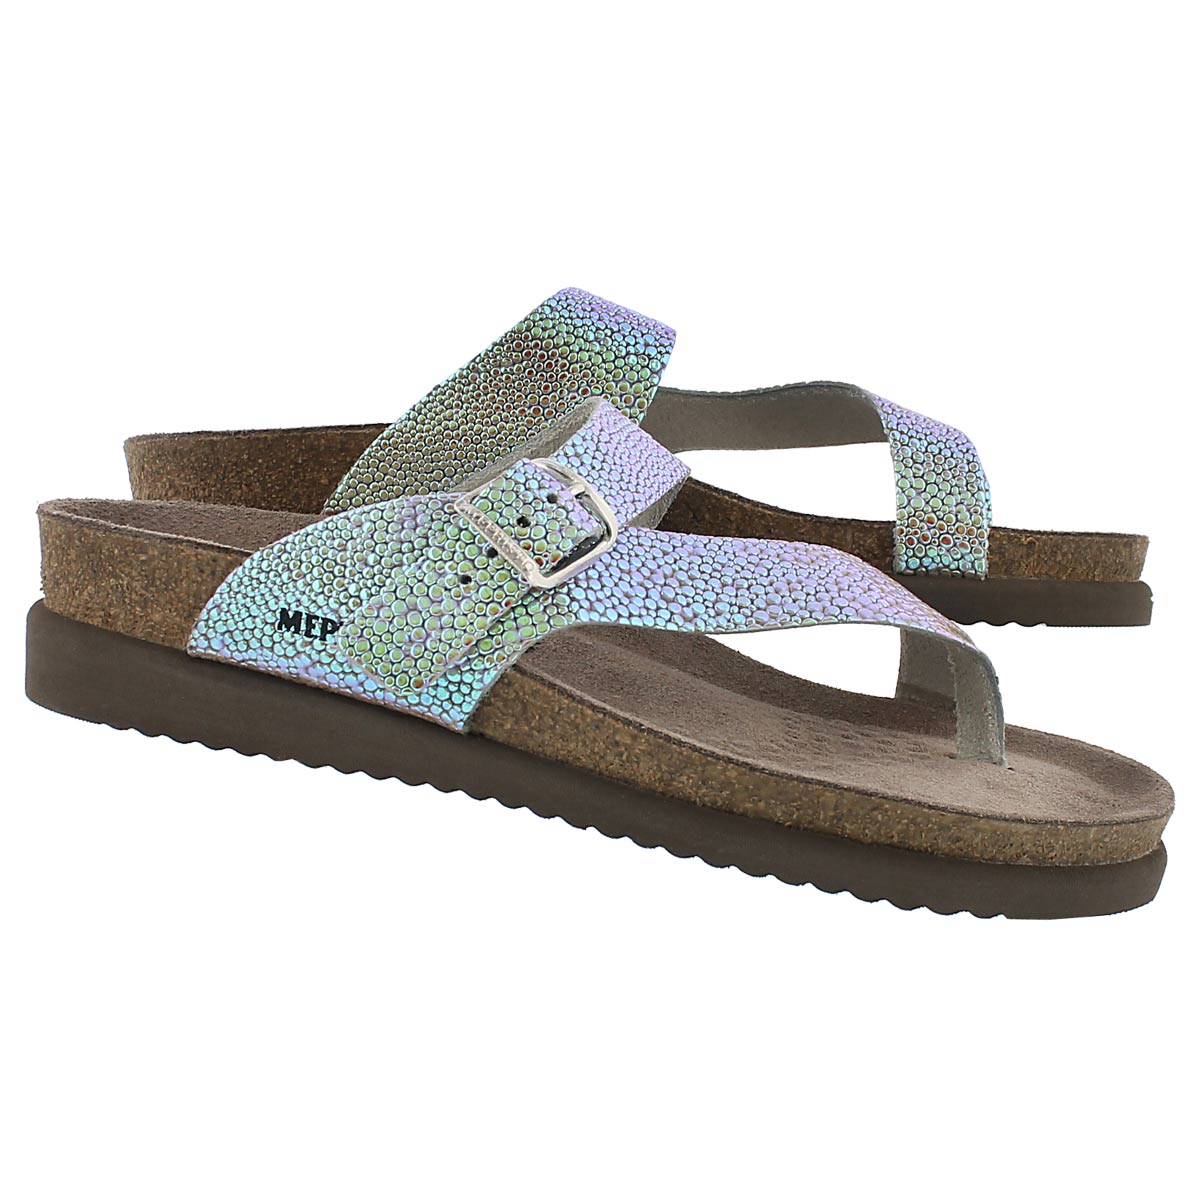 Lds Helen salsa nickel cork ftbd thong